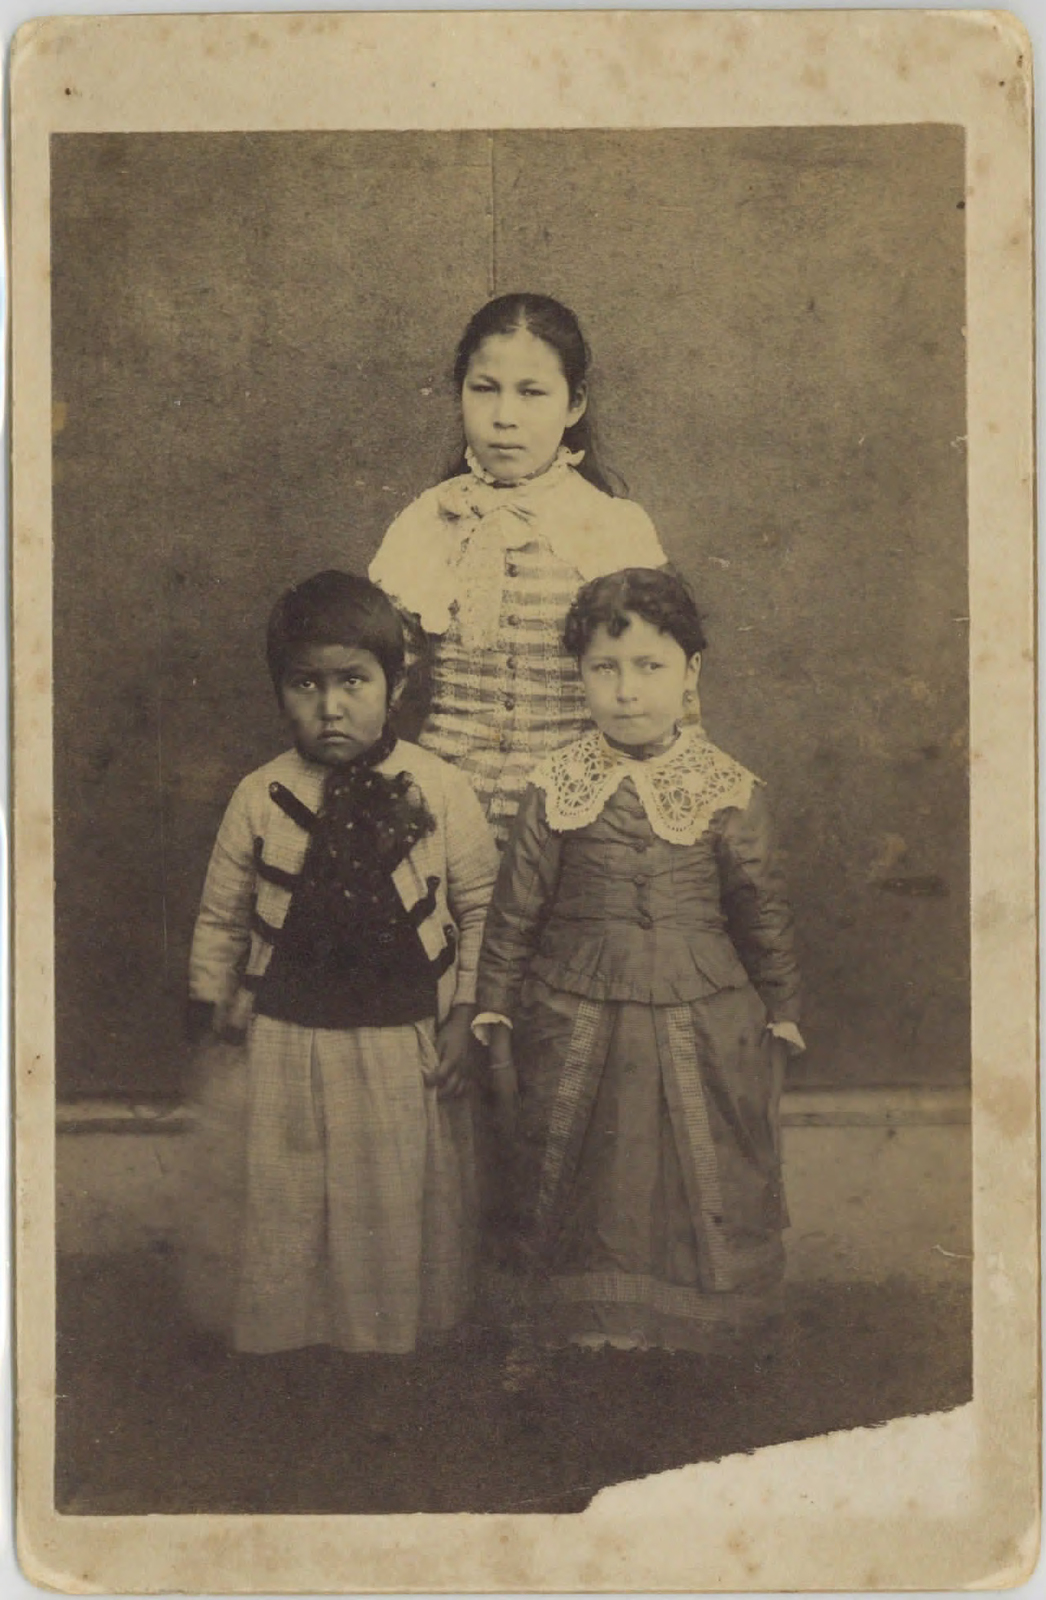 Loud 17, Three young girls, St. Paul Island. Photograph by Gray & Hereford